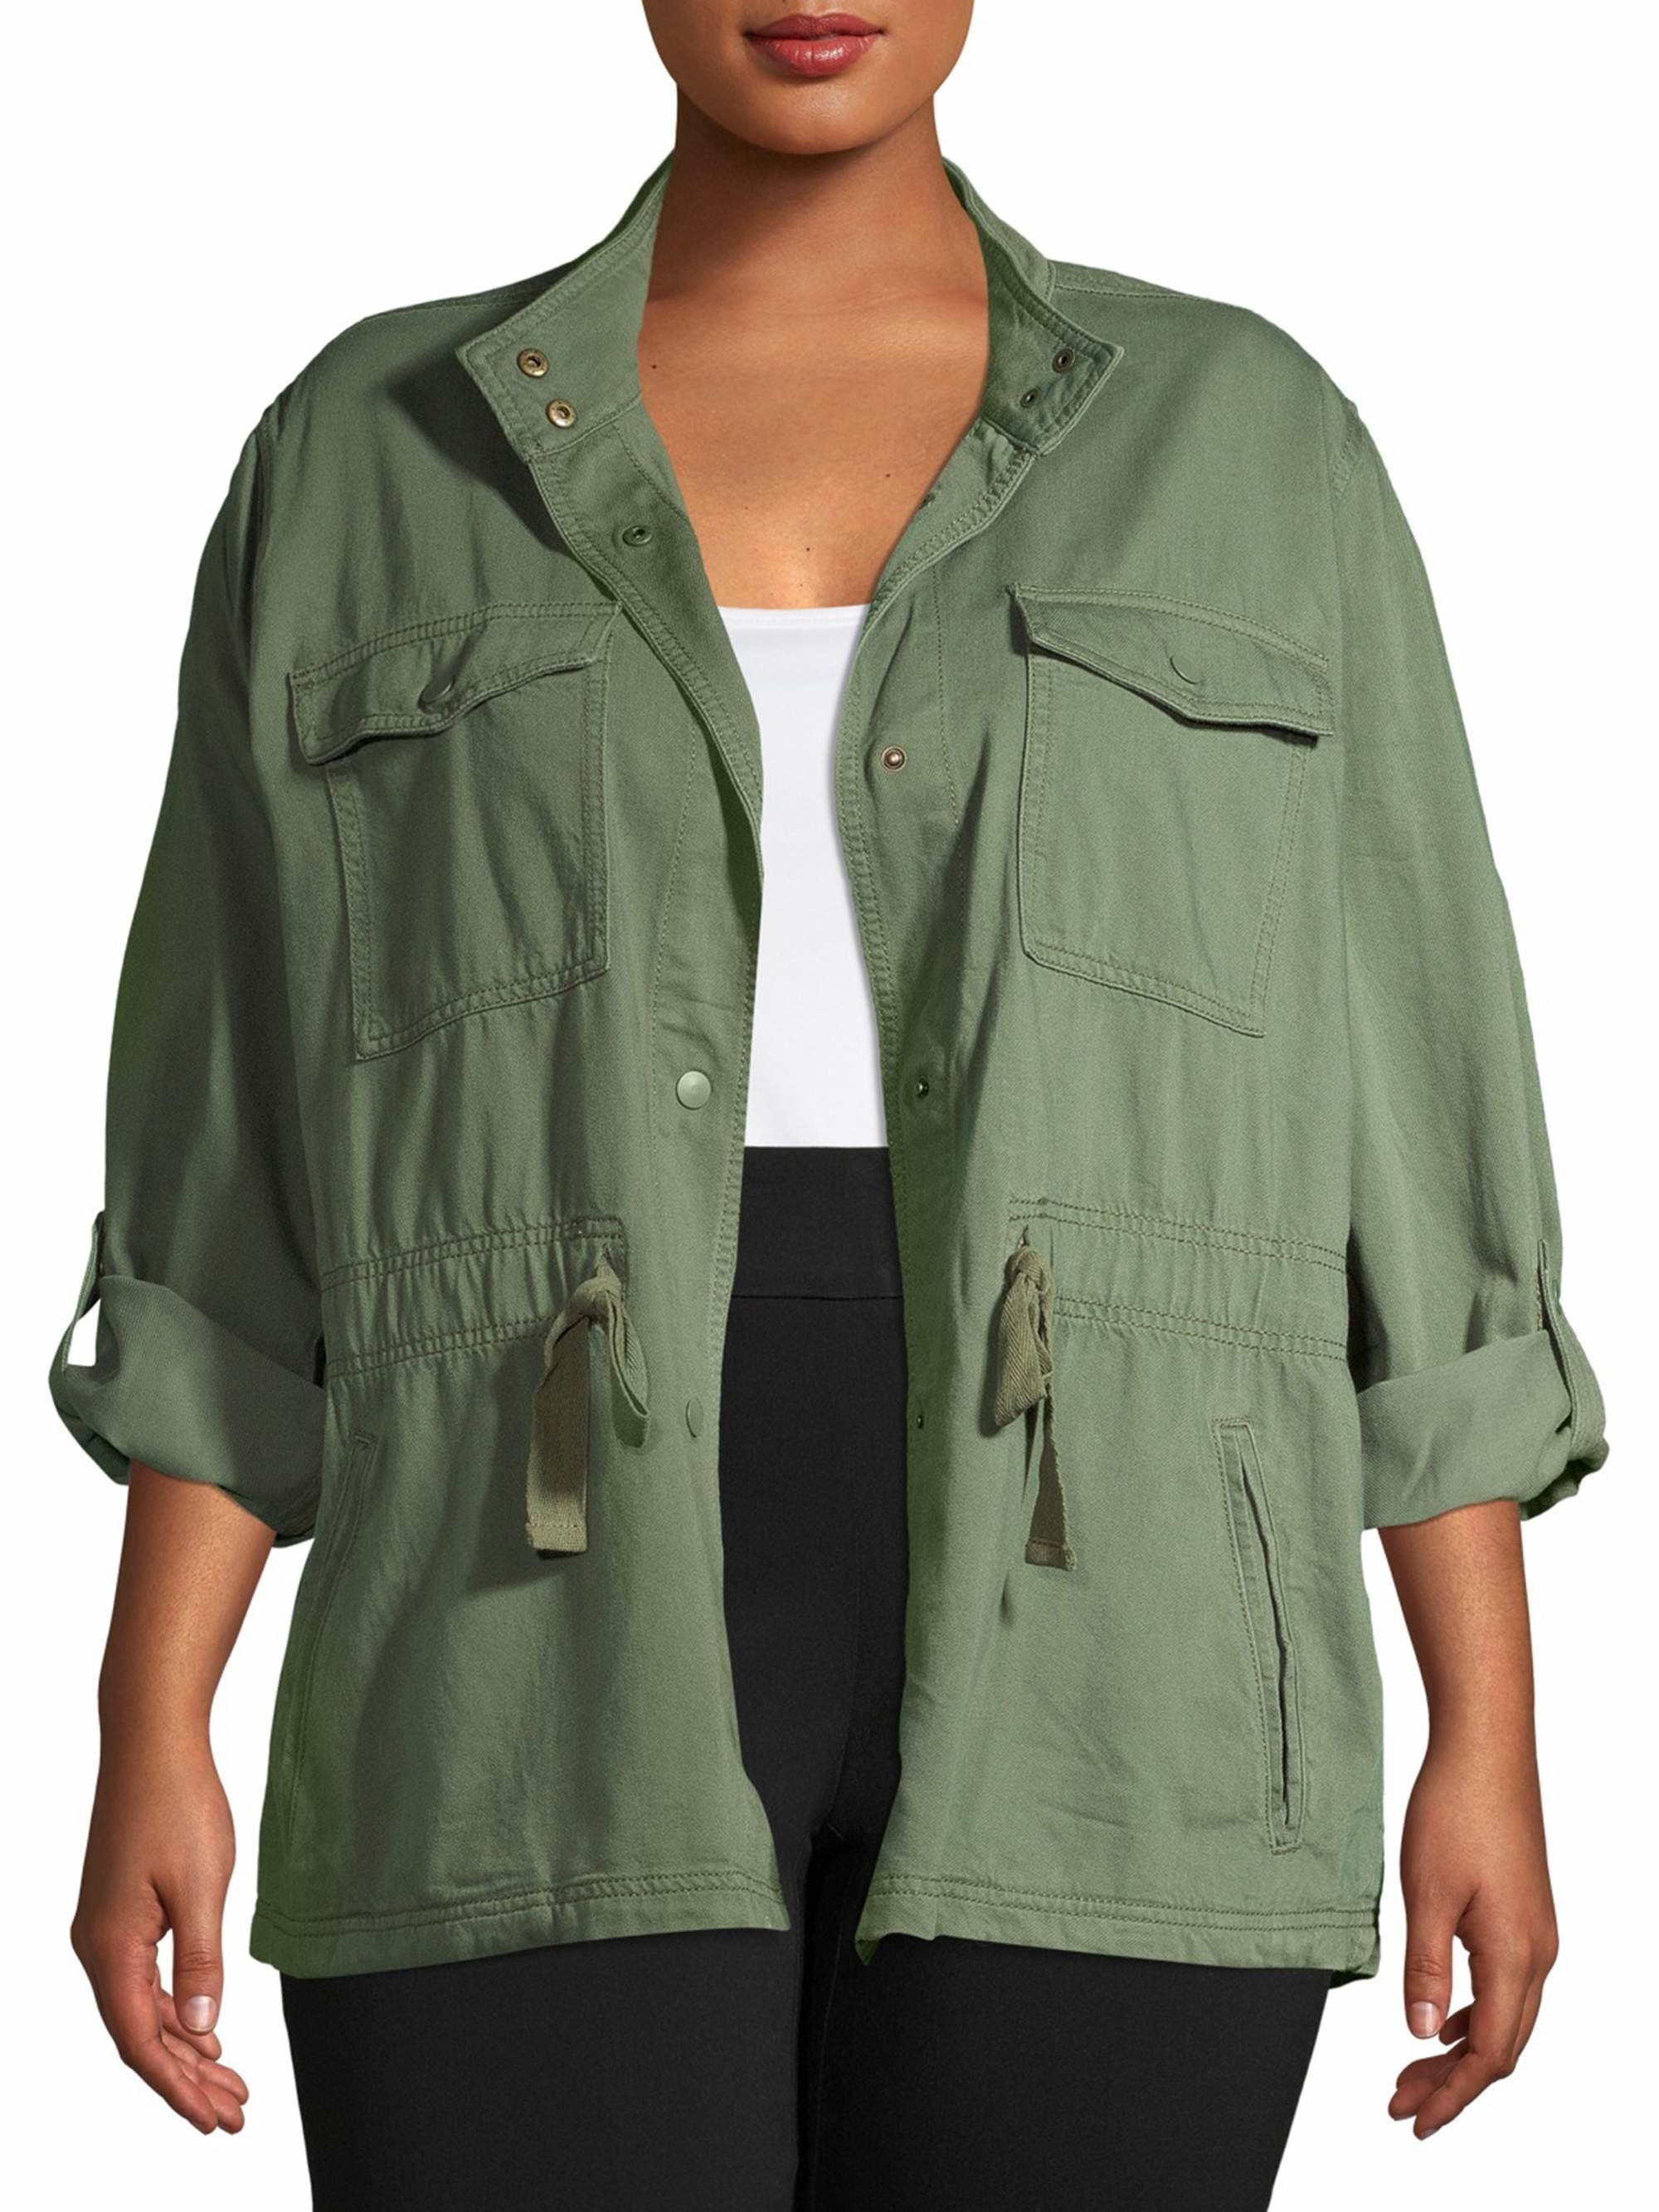 The green utility jacket